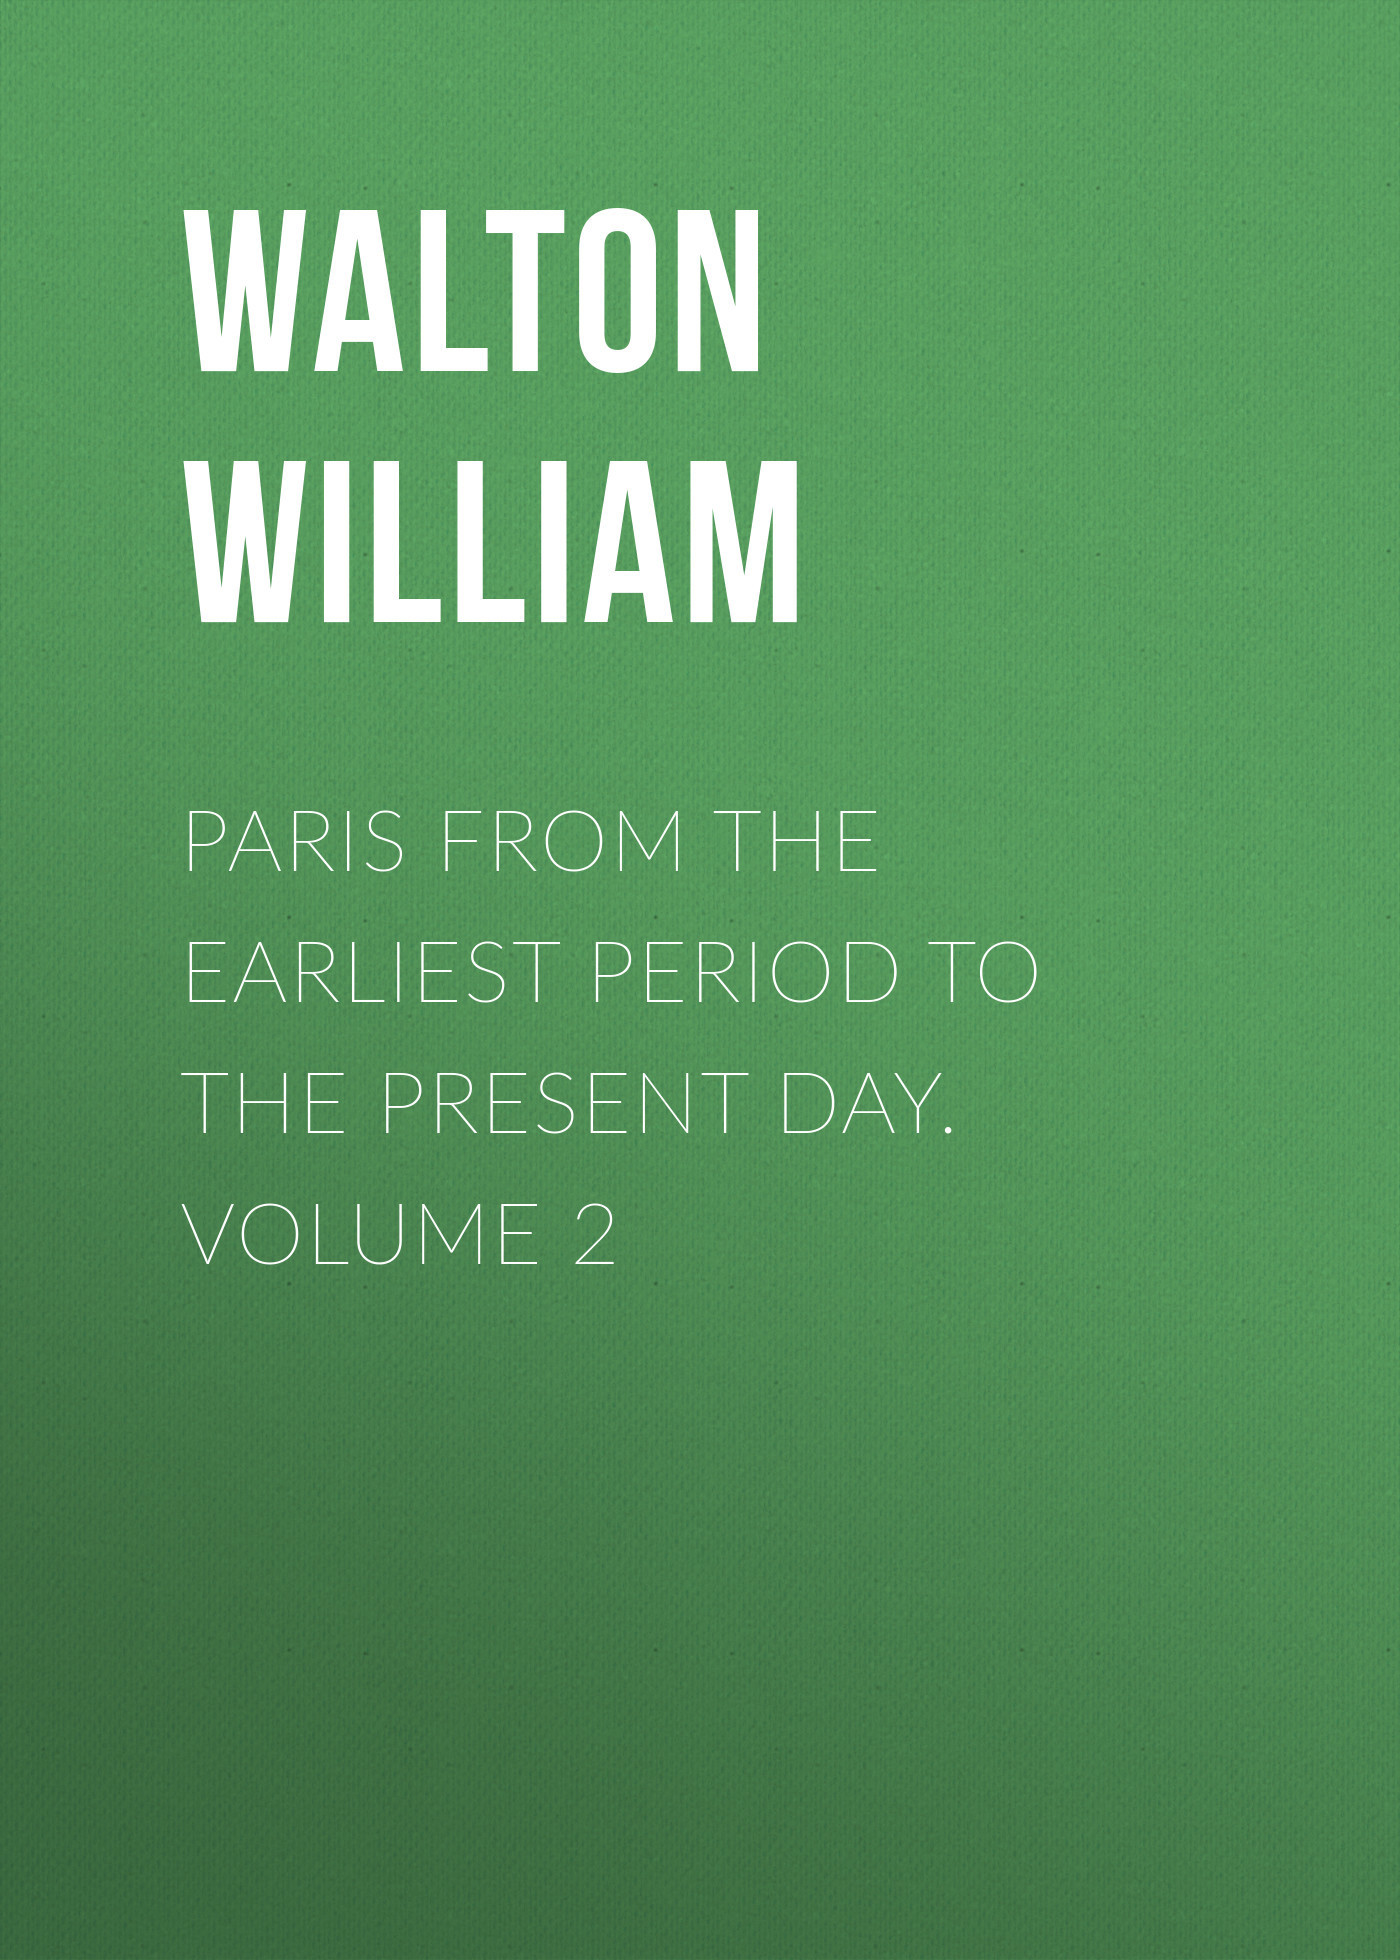 Walton William Paris from the Earliest Period to the Present Day. Volume 2 lollapalooza paris 2018 2 day pass